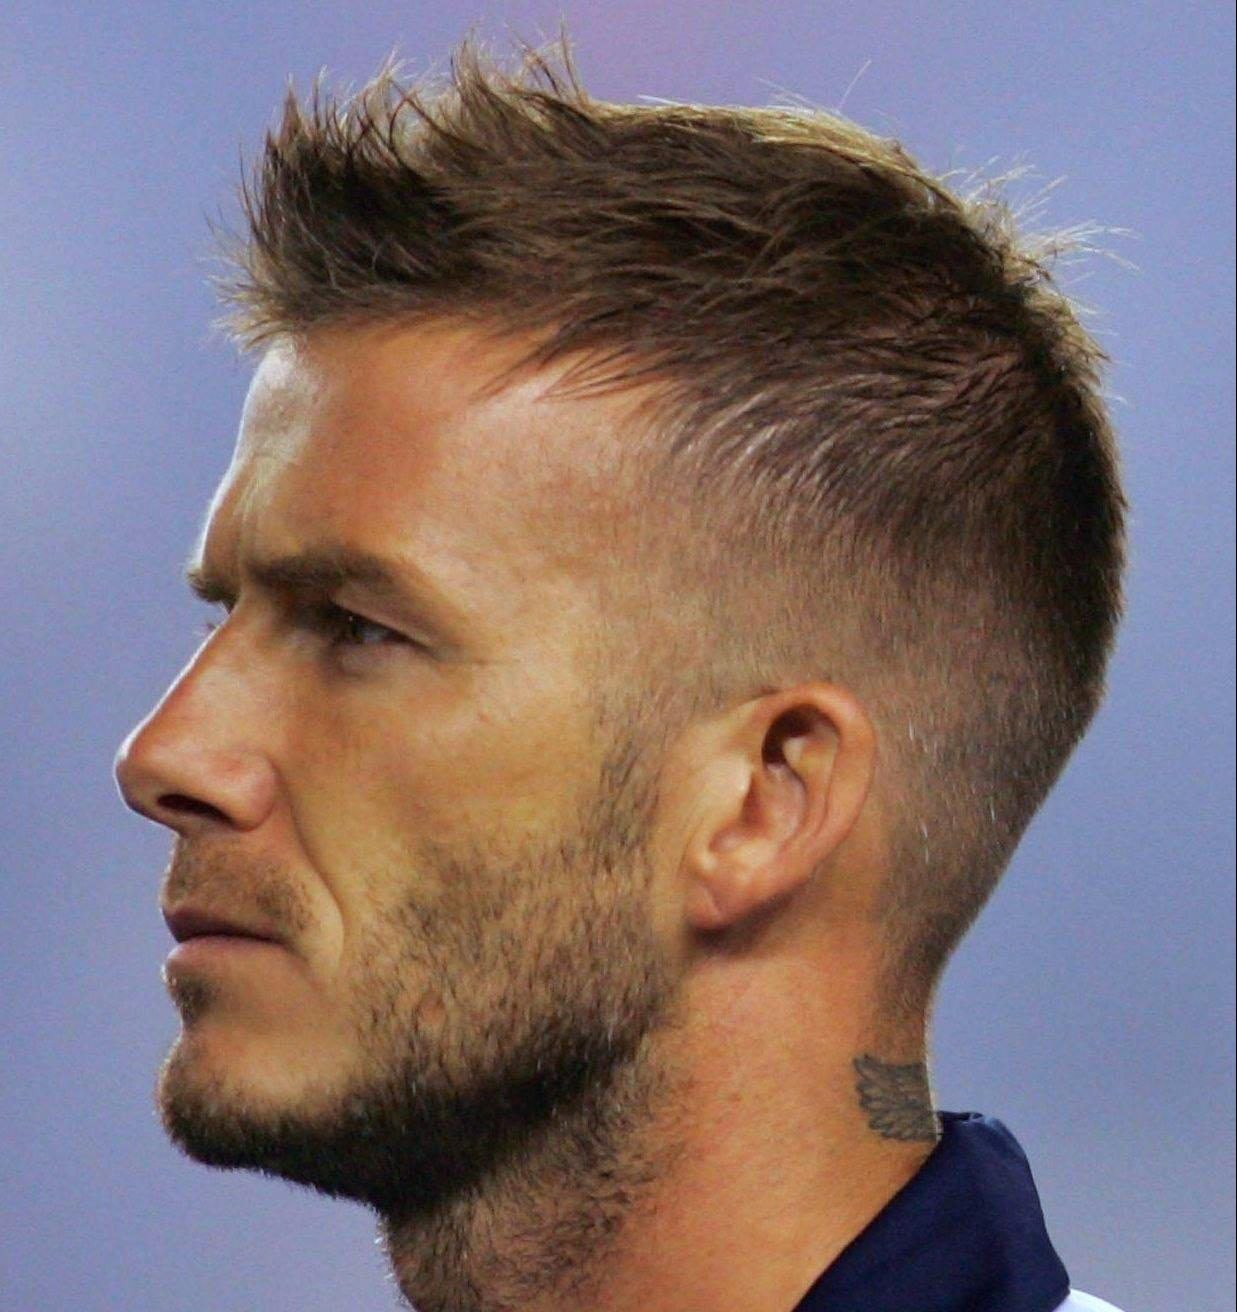 Mens Thin Hairstyles Best Collection 10 Best Hairstyles for Balding Men Thin Hair Men, Haircuts for ...